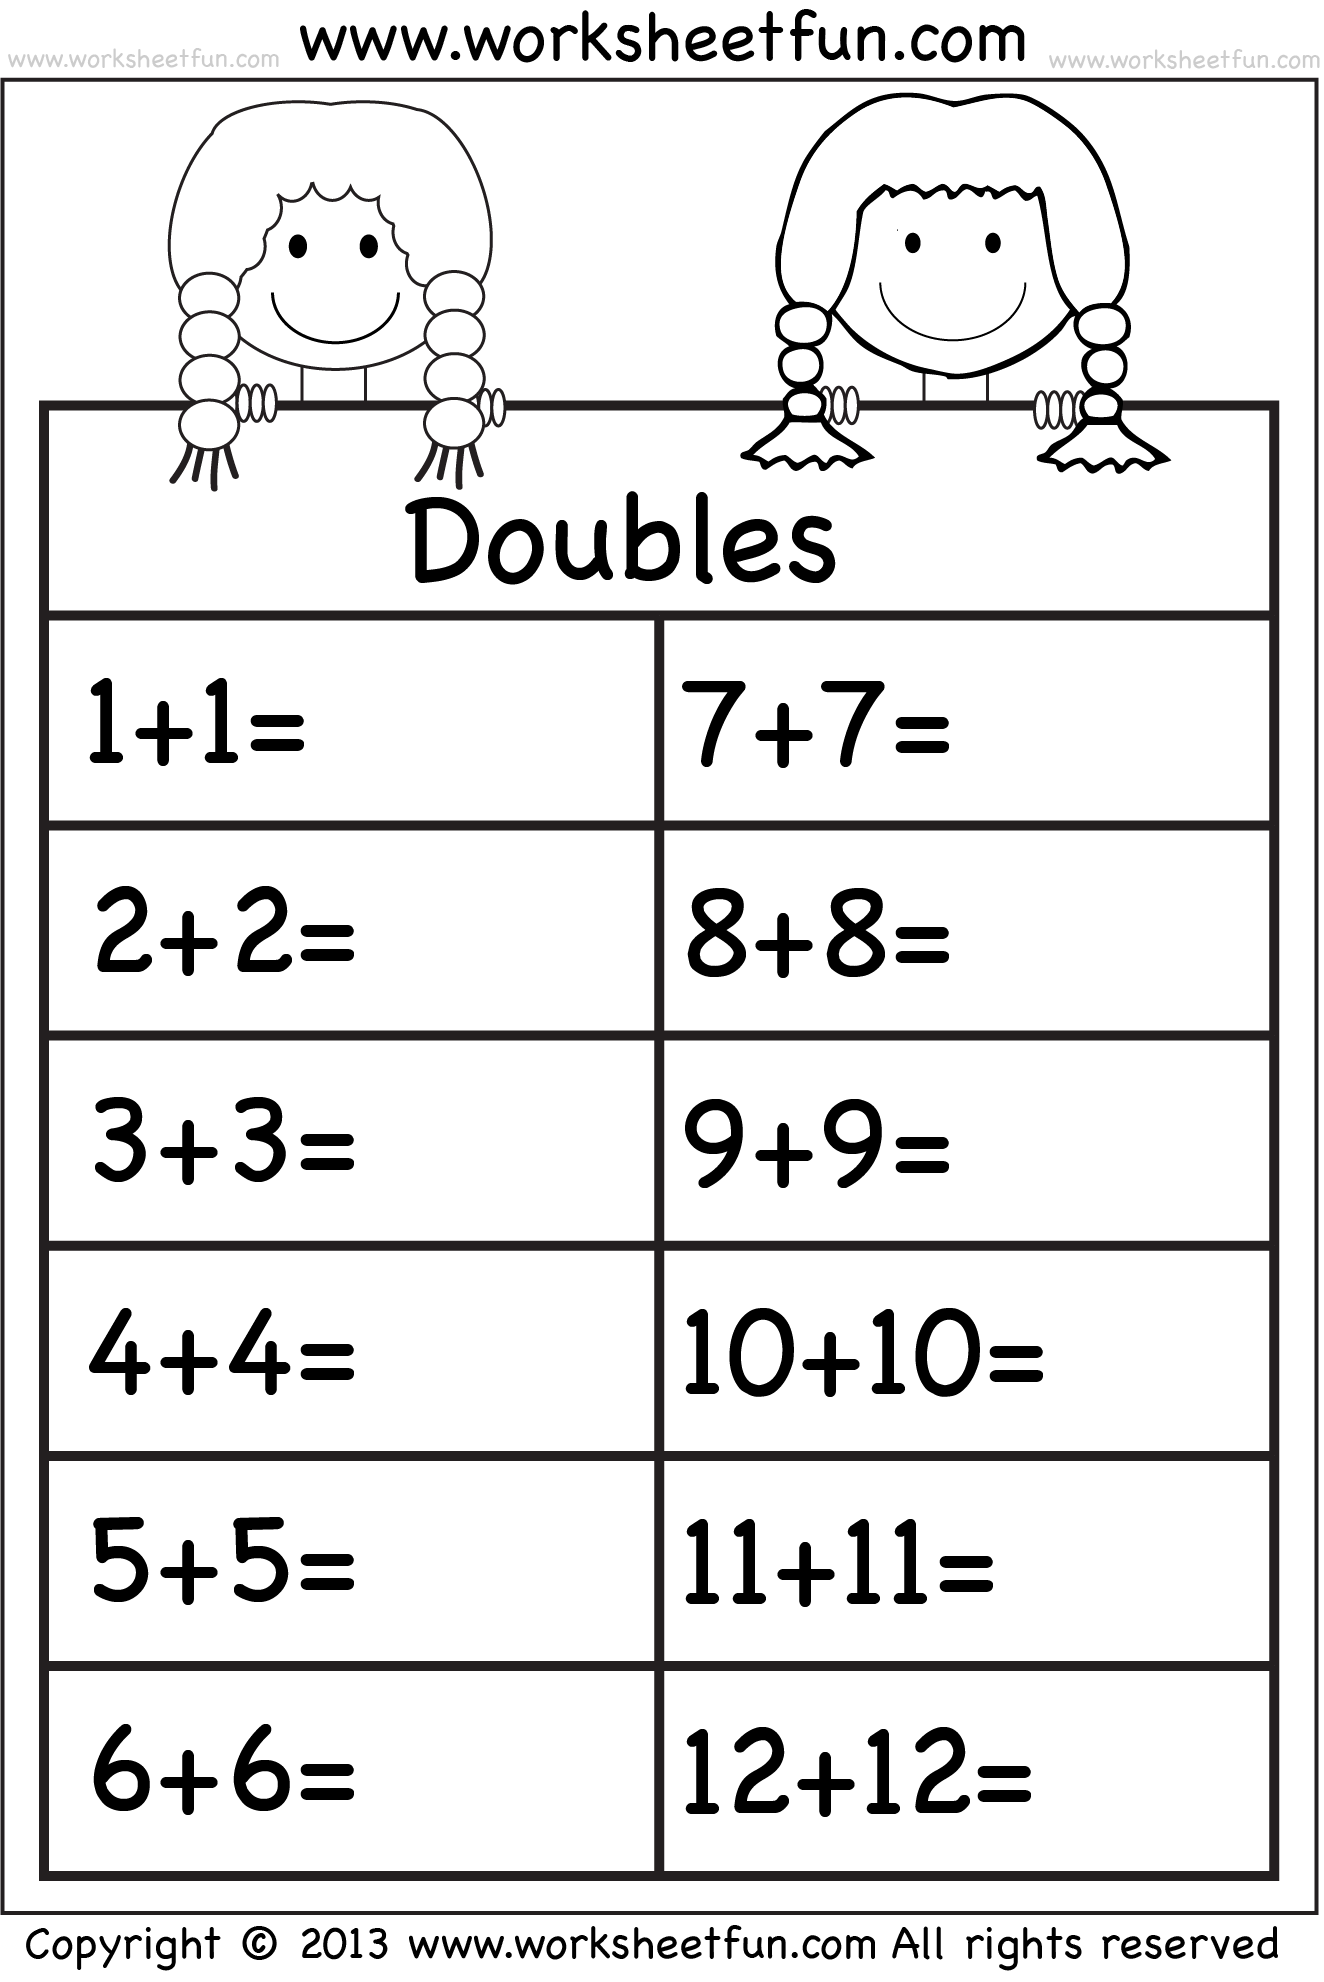 worksheet Doubles Facts Worksheet addition doubles mathematics pinterest math worksheets and doubles